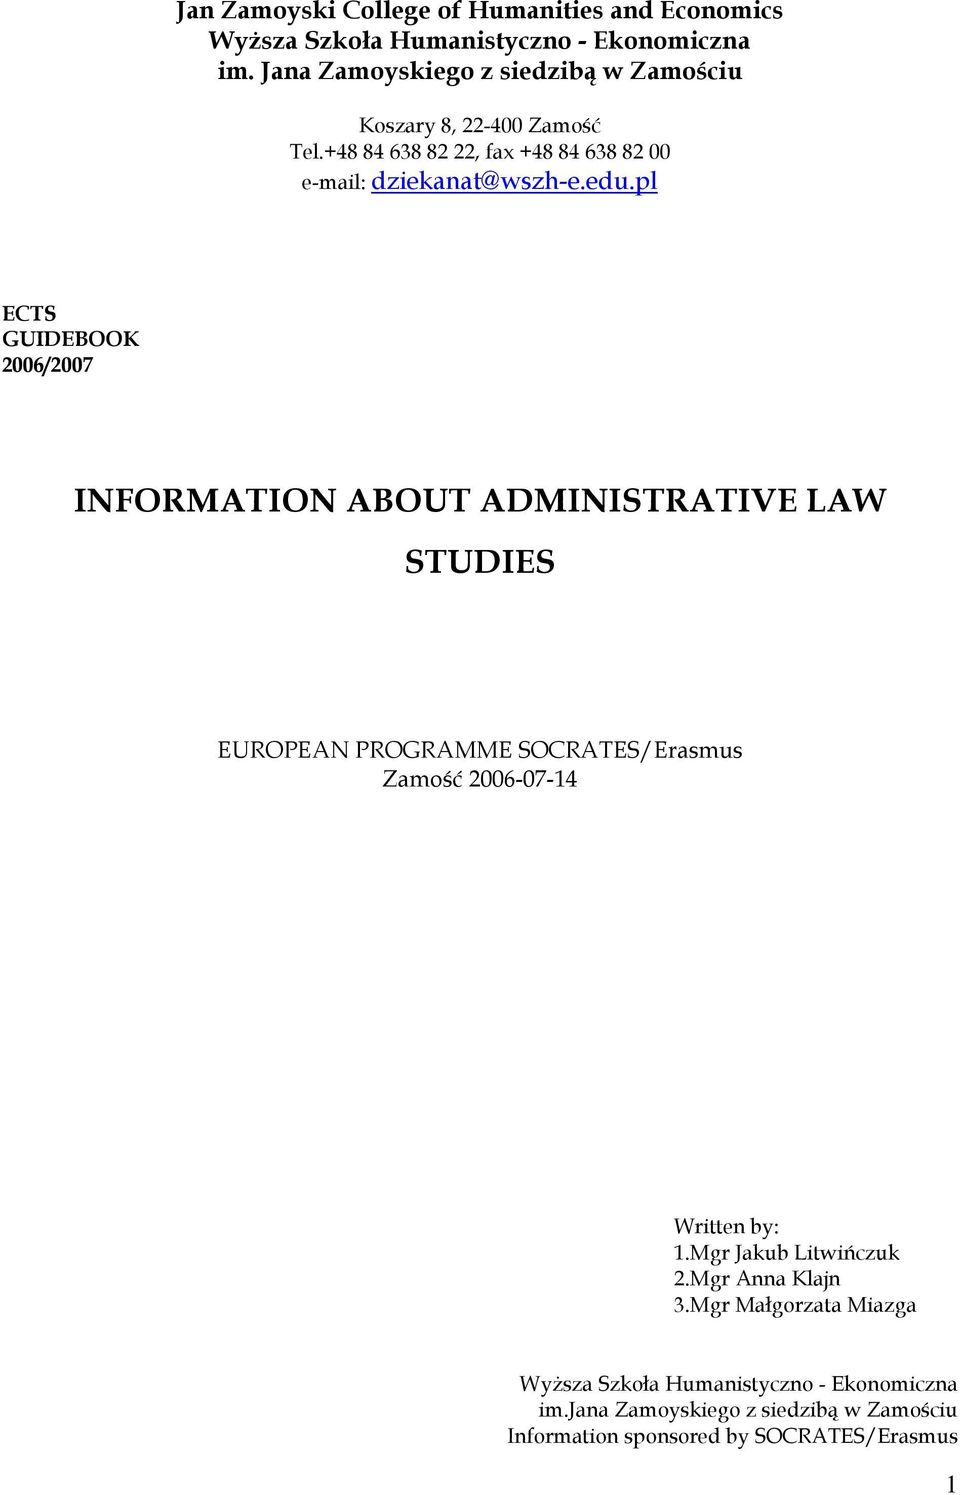 pl ECTS GUIDEBOOK 2006/2007 INFORMATION ABOUT ADMINISTRATIVE LAW STUDIES EUROPEAN PROGRAMME SOCRATES/Erasmus Zamość 2006-07-14 Written by: 1.